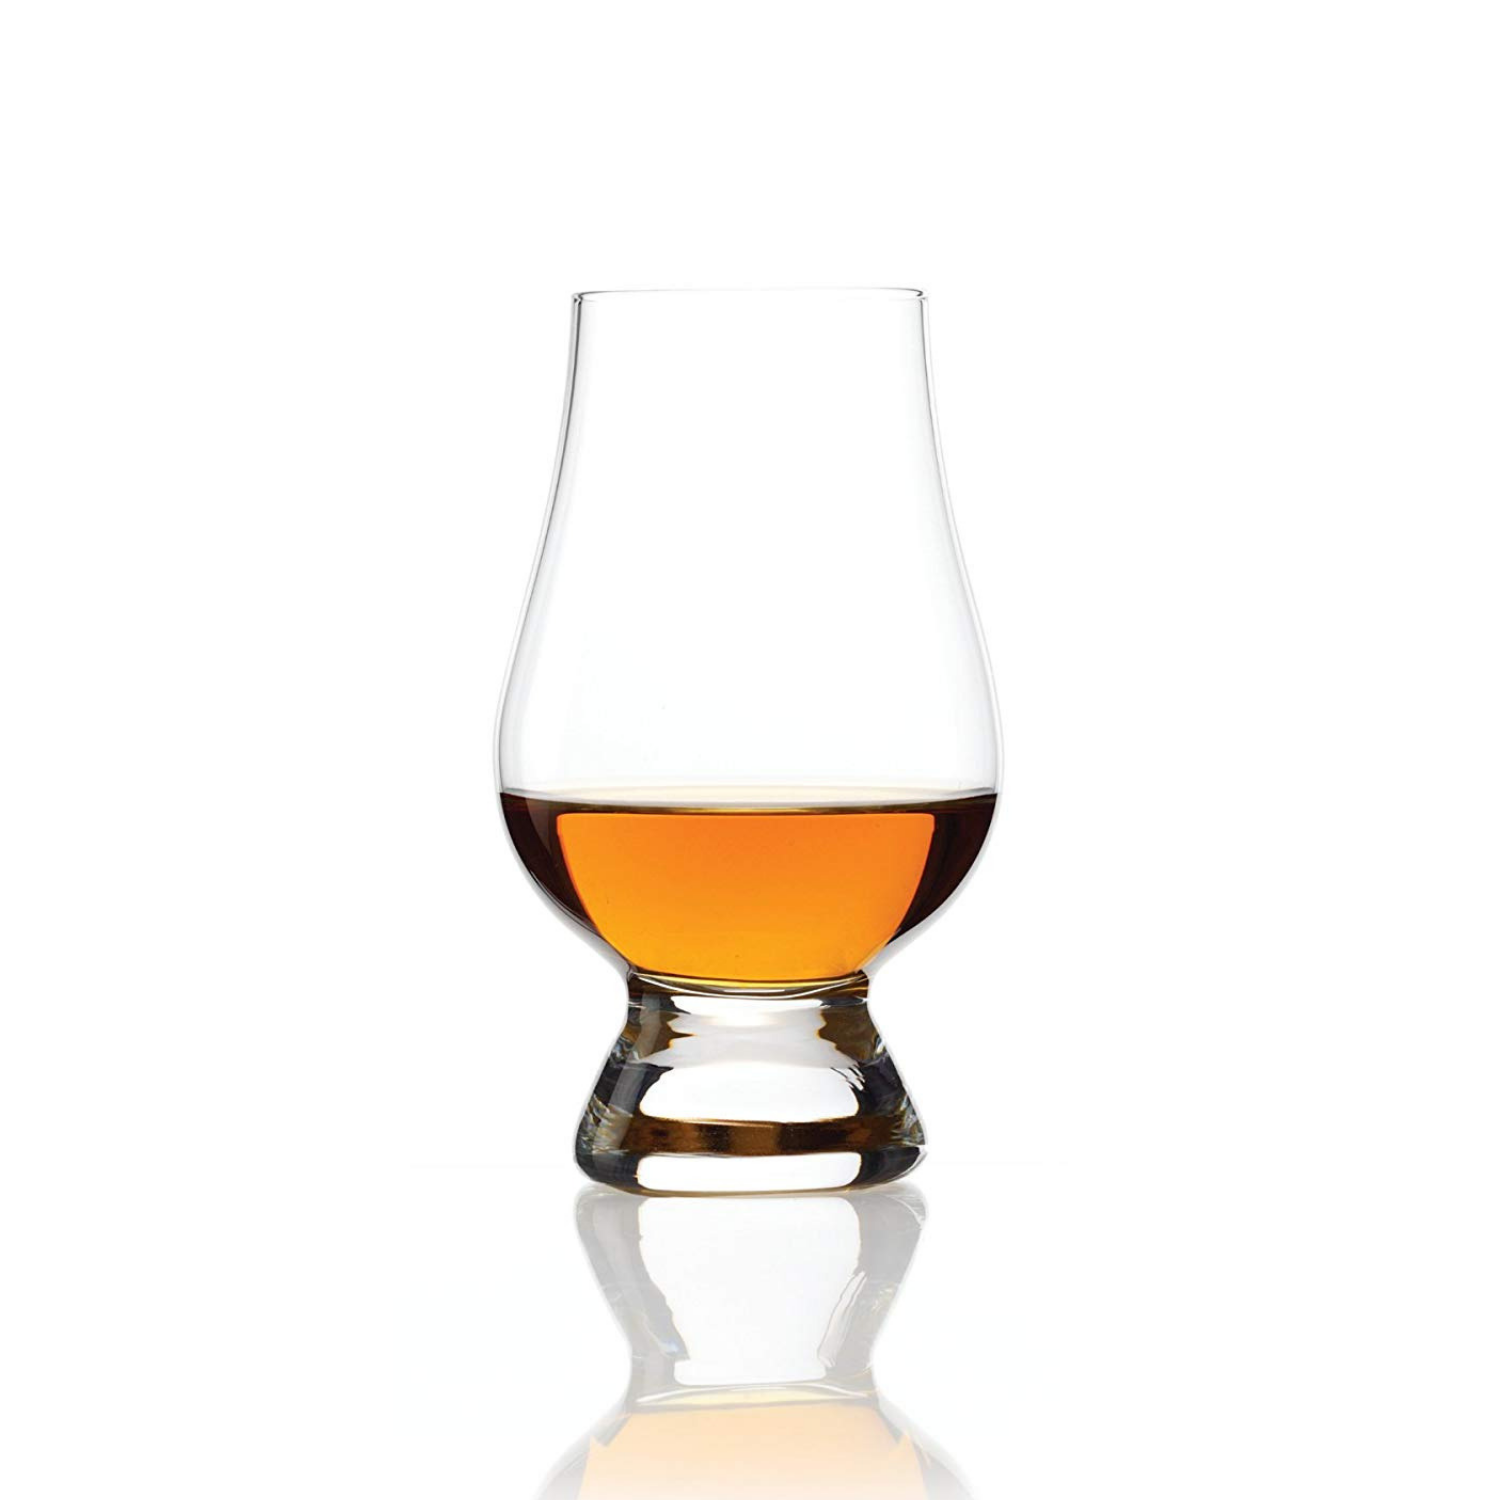 Télécharger photo whisky glass png